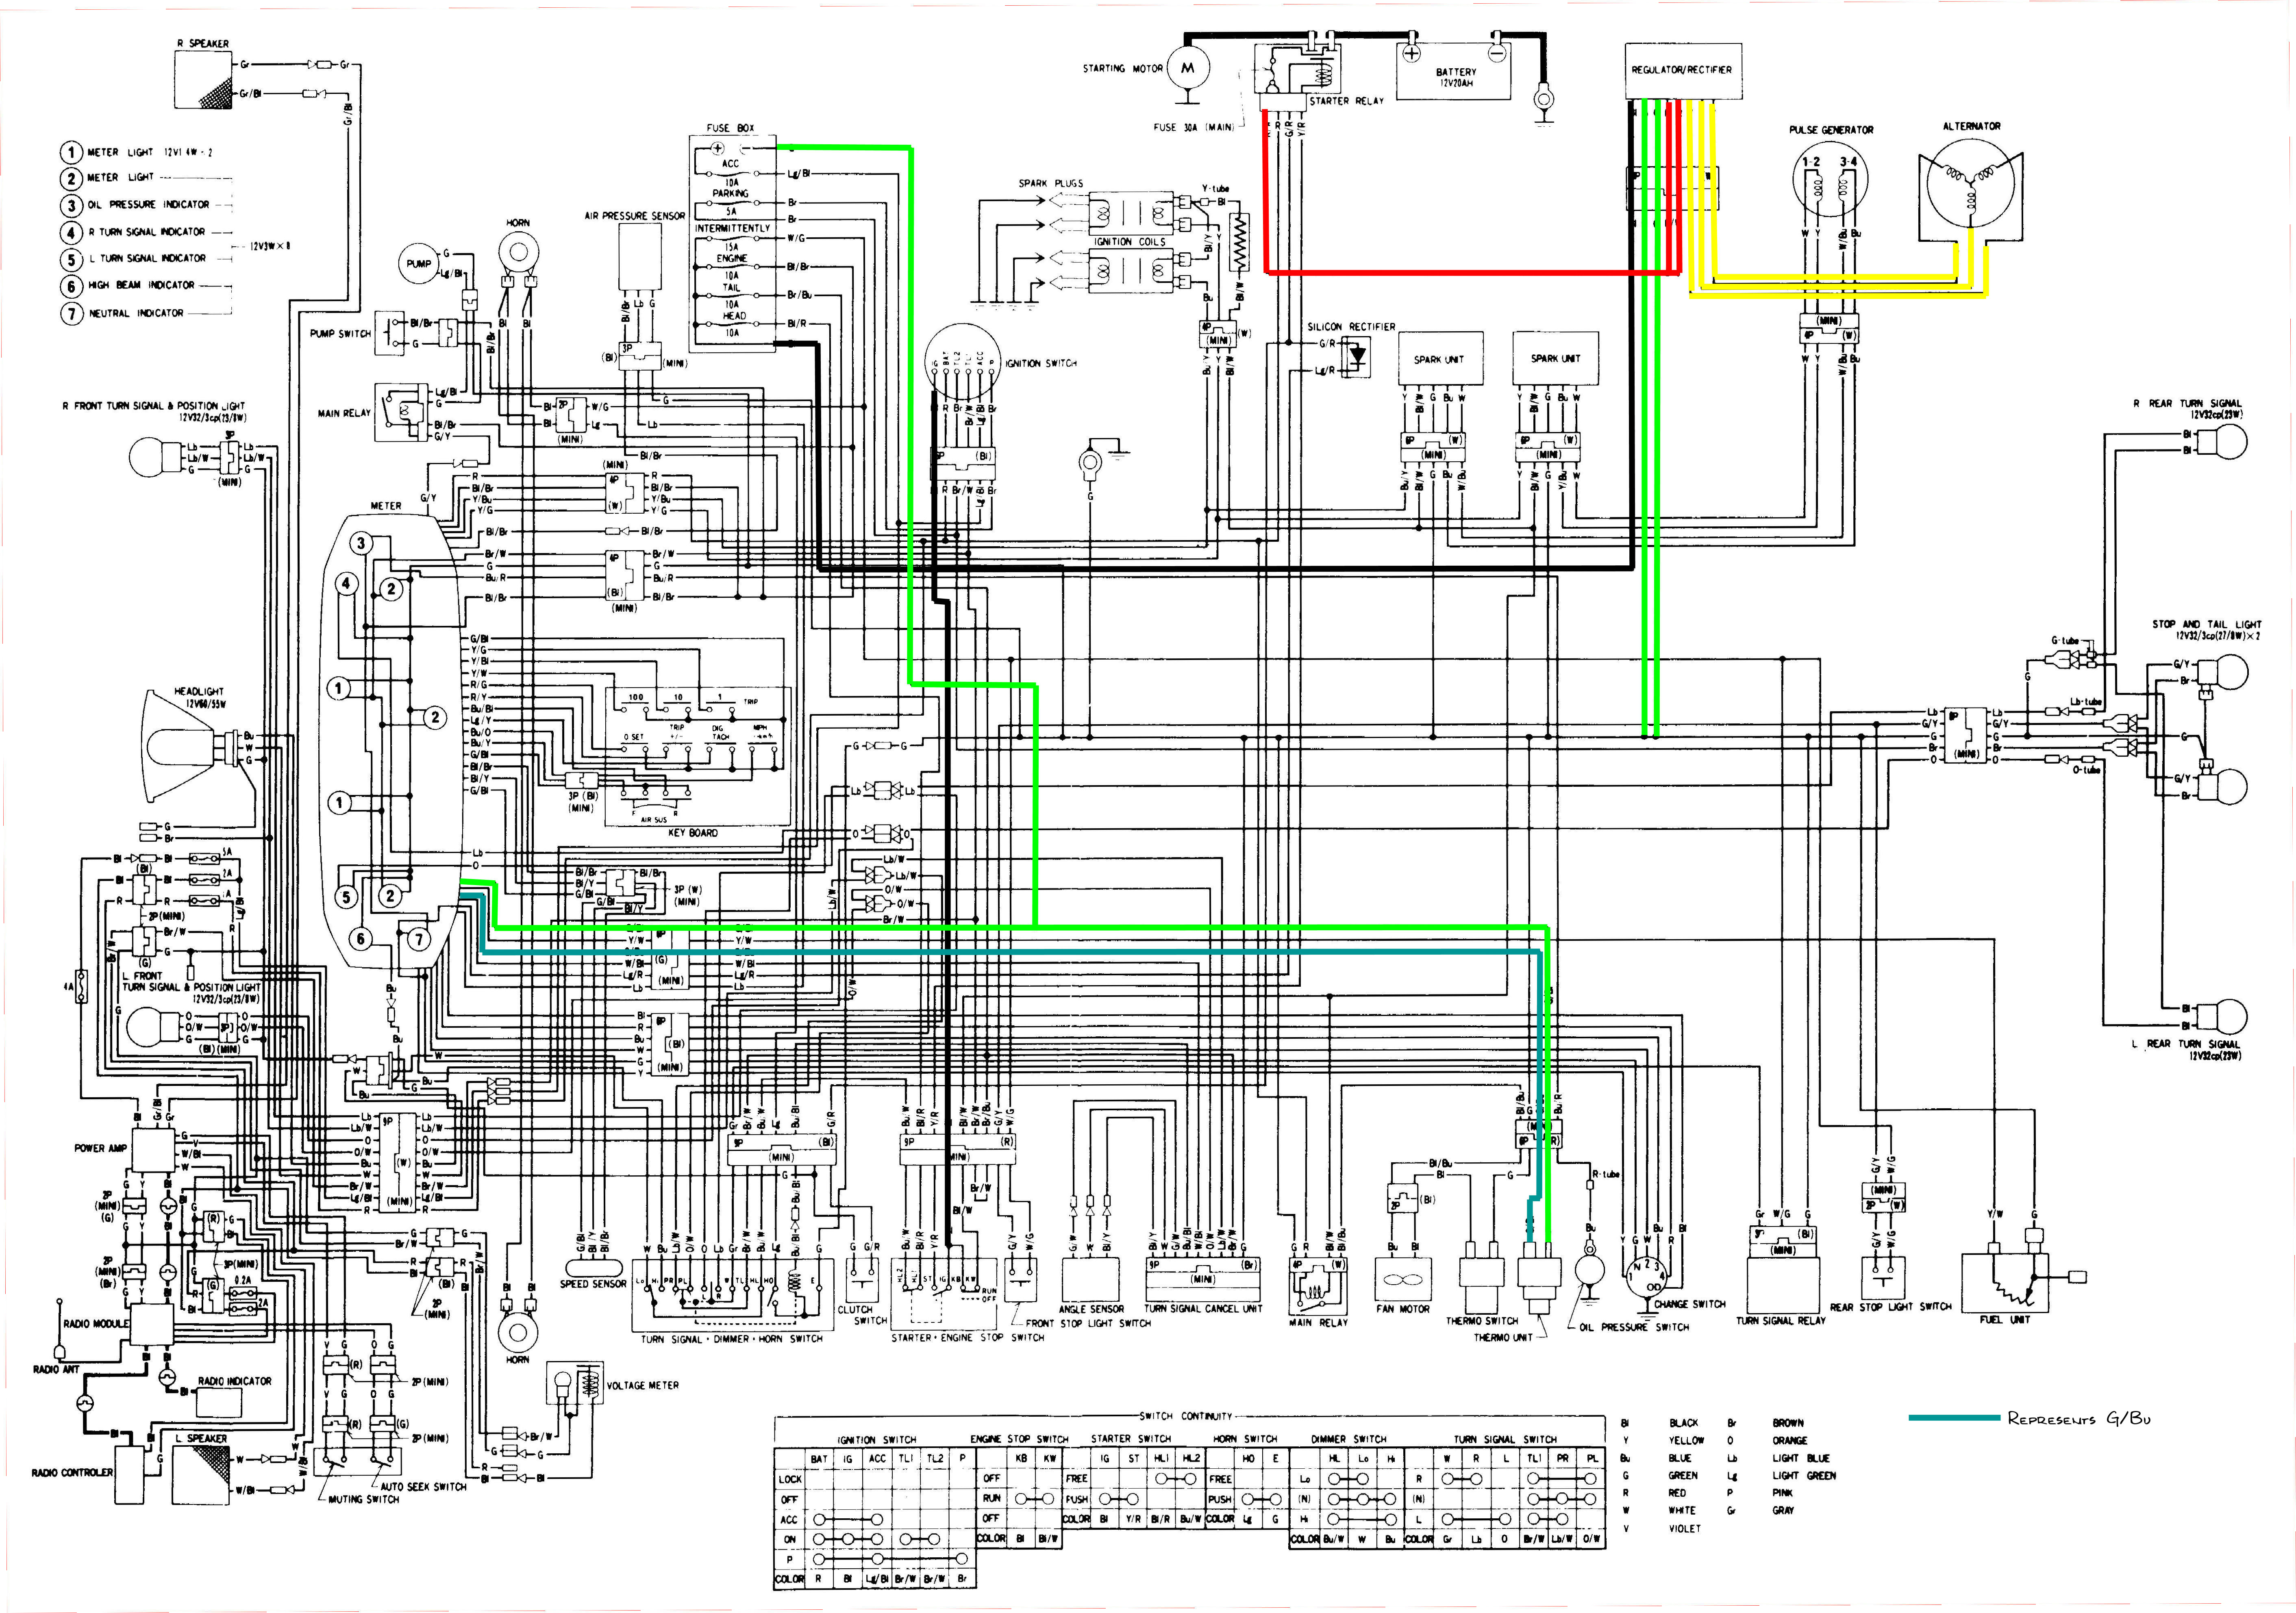 Amazing Honda Mt250 Wiring Diagram Pictures - Best Image Wire ...